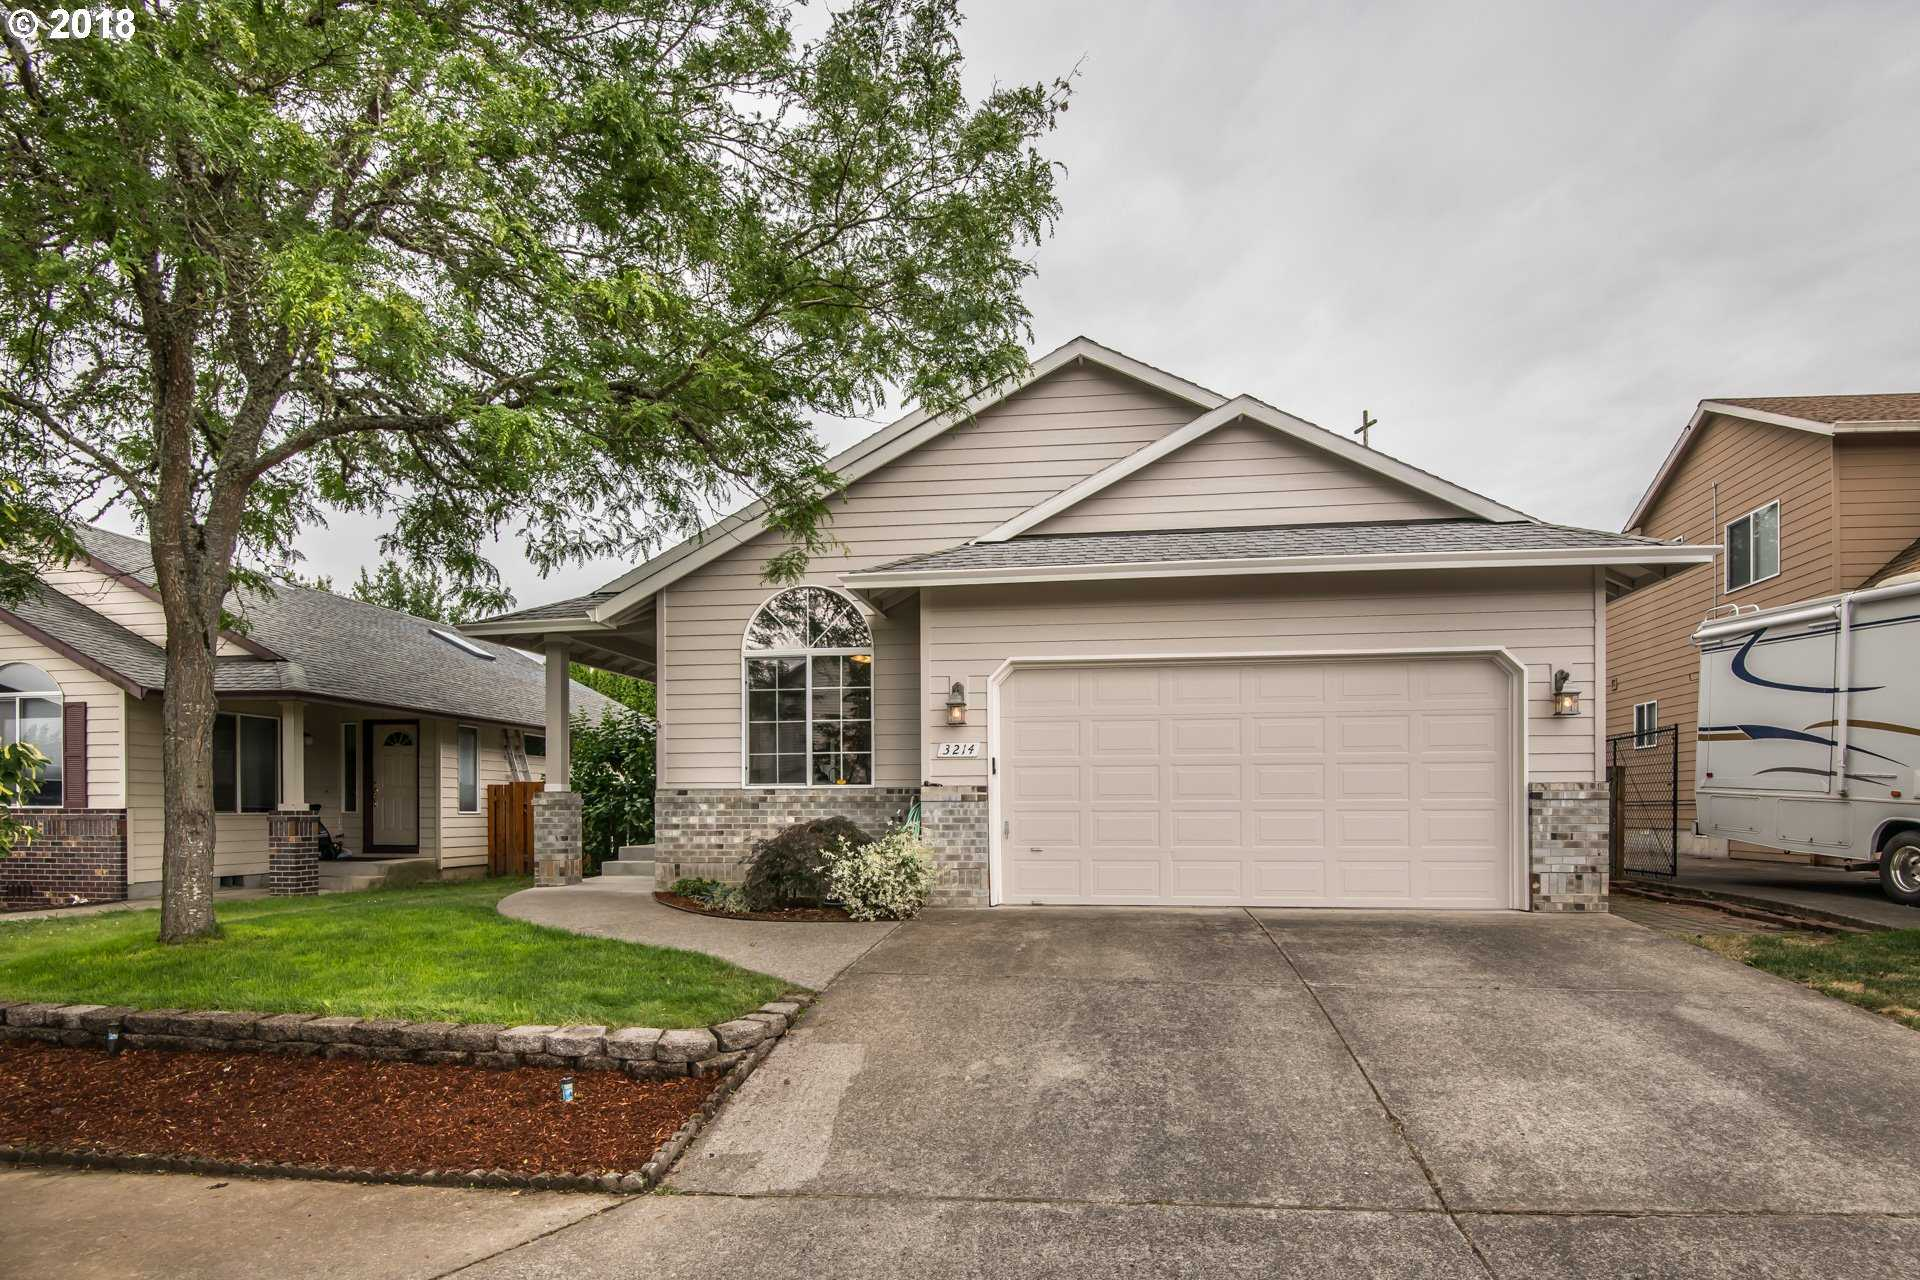 $315,000 - 3Br/2Ba -  for Sale in Mt Hood Meadowlands, Gresham